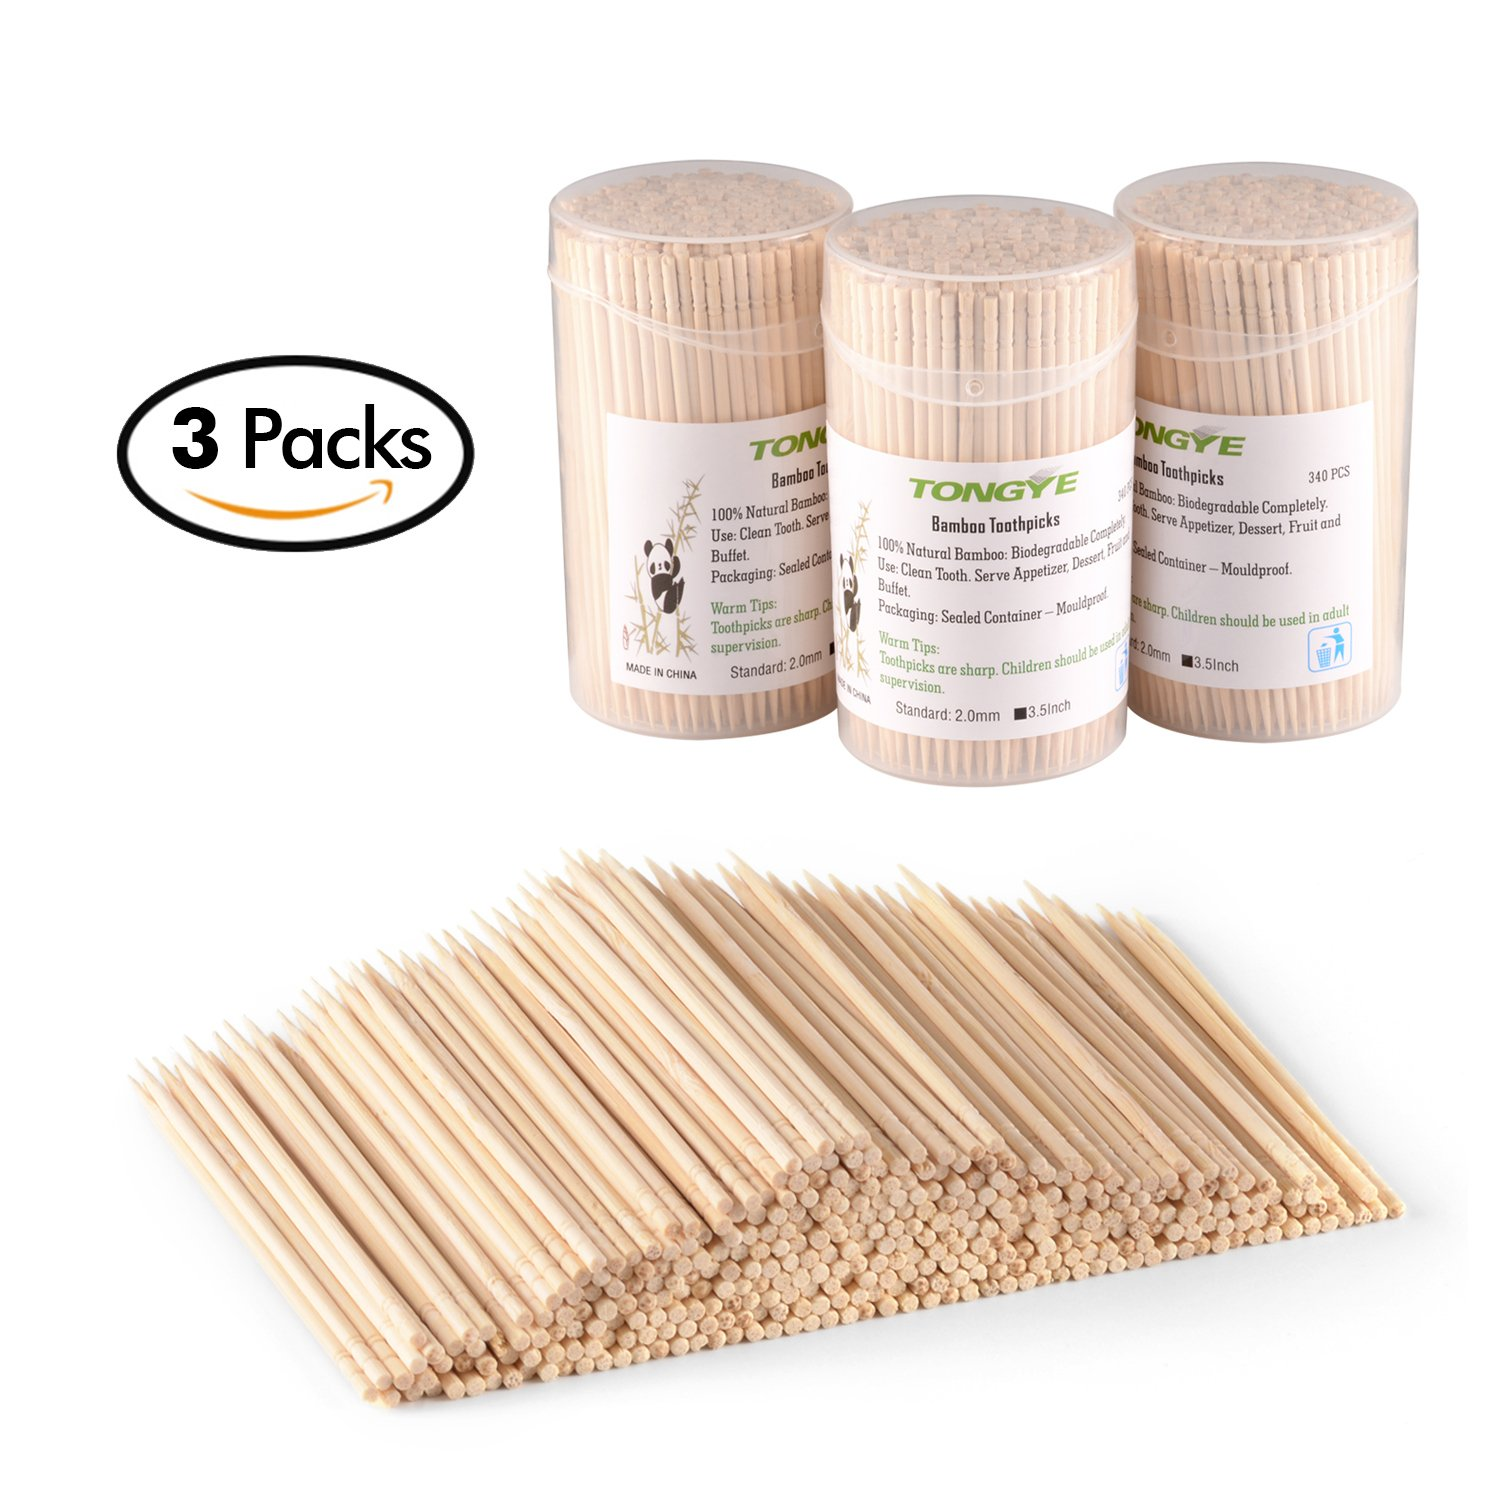 Bamboo Toothpicks 3.5 Inch with Clear Cylinder Holder. Ornate Kokeshi Style Skewers for Party, Appetizer, Olive, Barbecue, Fruit and Teeth Cleaning. 1020 PCS (3 Packs of 340)